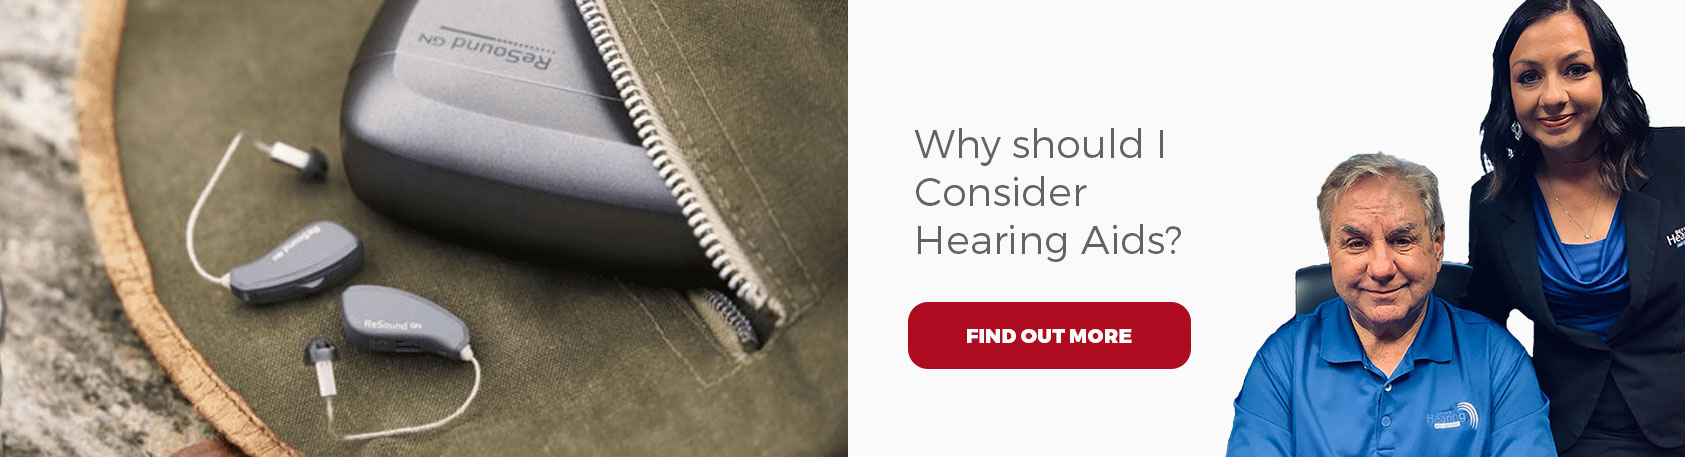 Why consider hearing aids - Better Hearing Aid Center